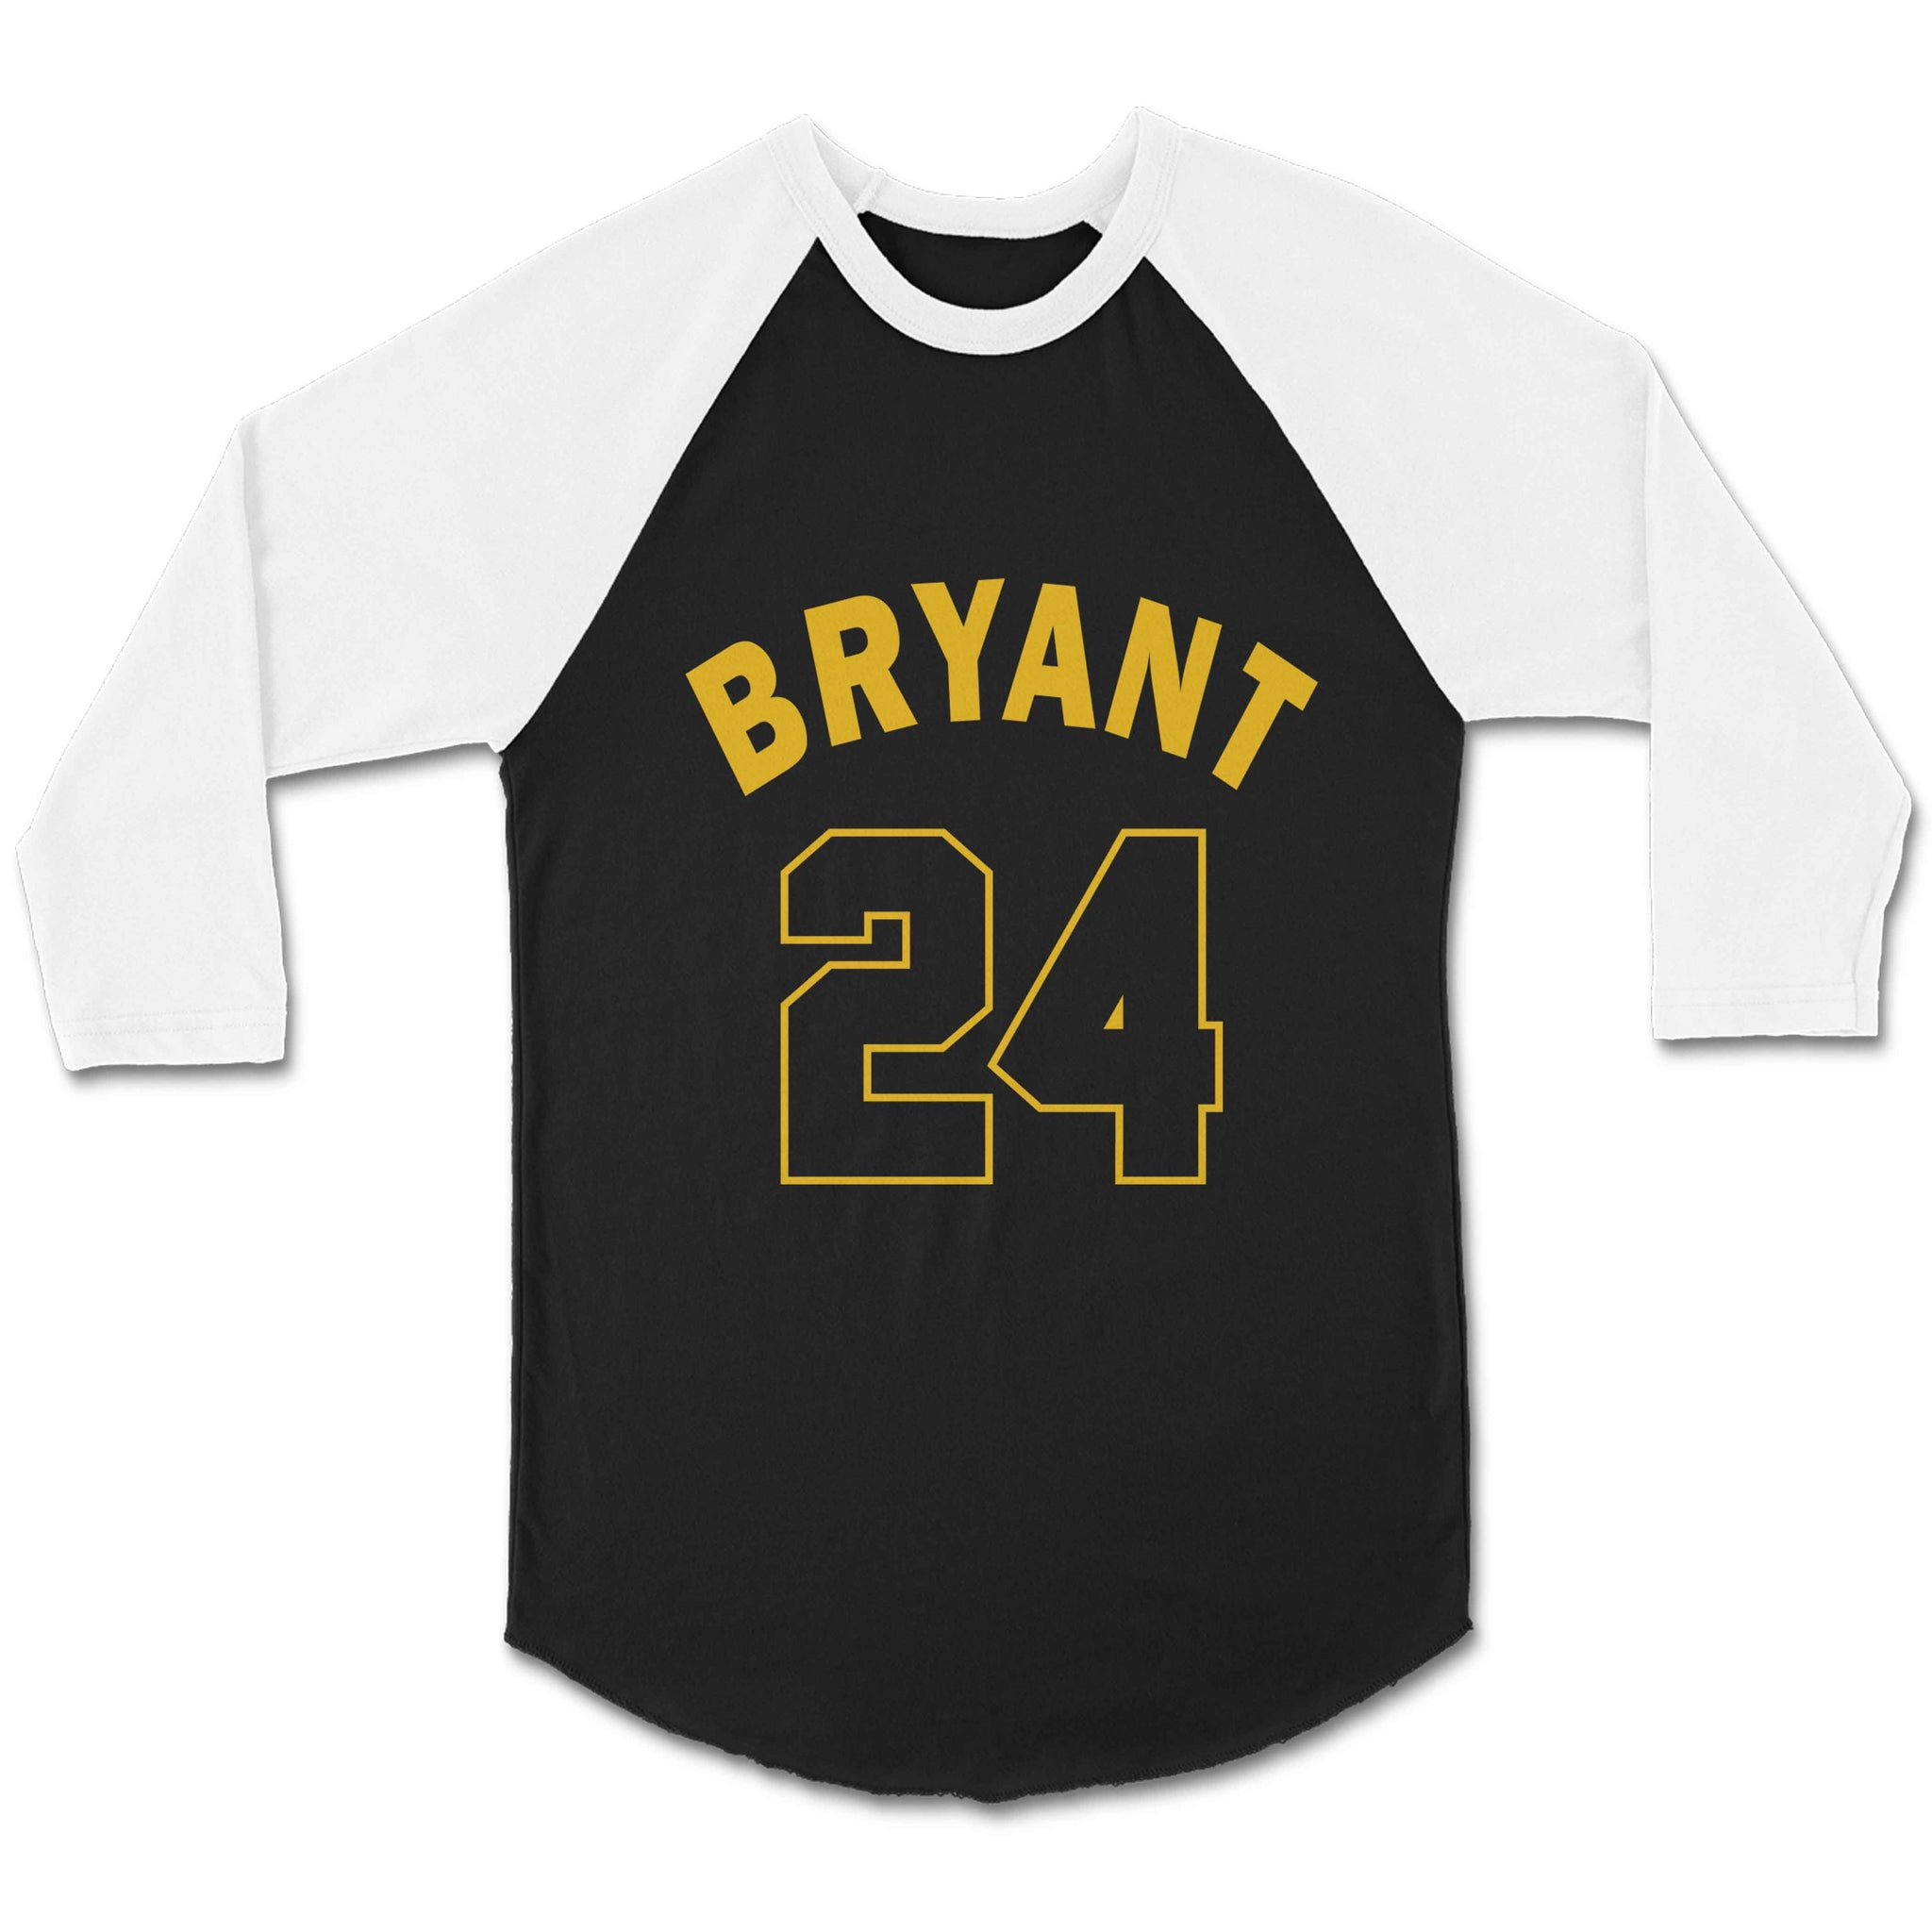 Los Angeles La Laker Legend Kobe Bryant Retiring 24 Jersey Numbers Unisex 3/4 Sleeve Baseball Tee T-Shirt